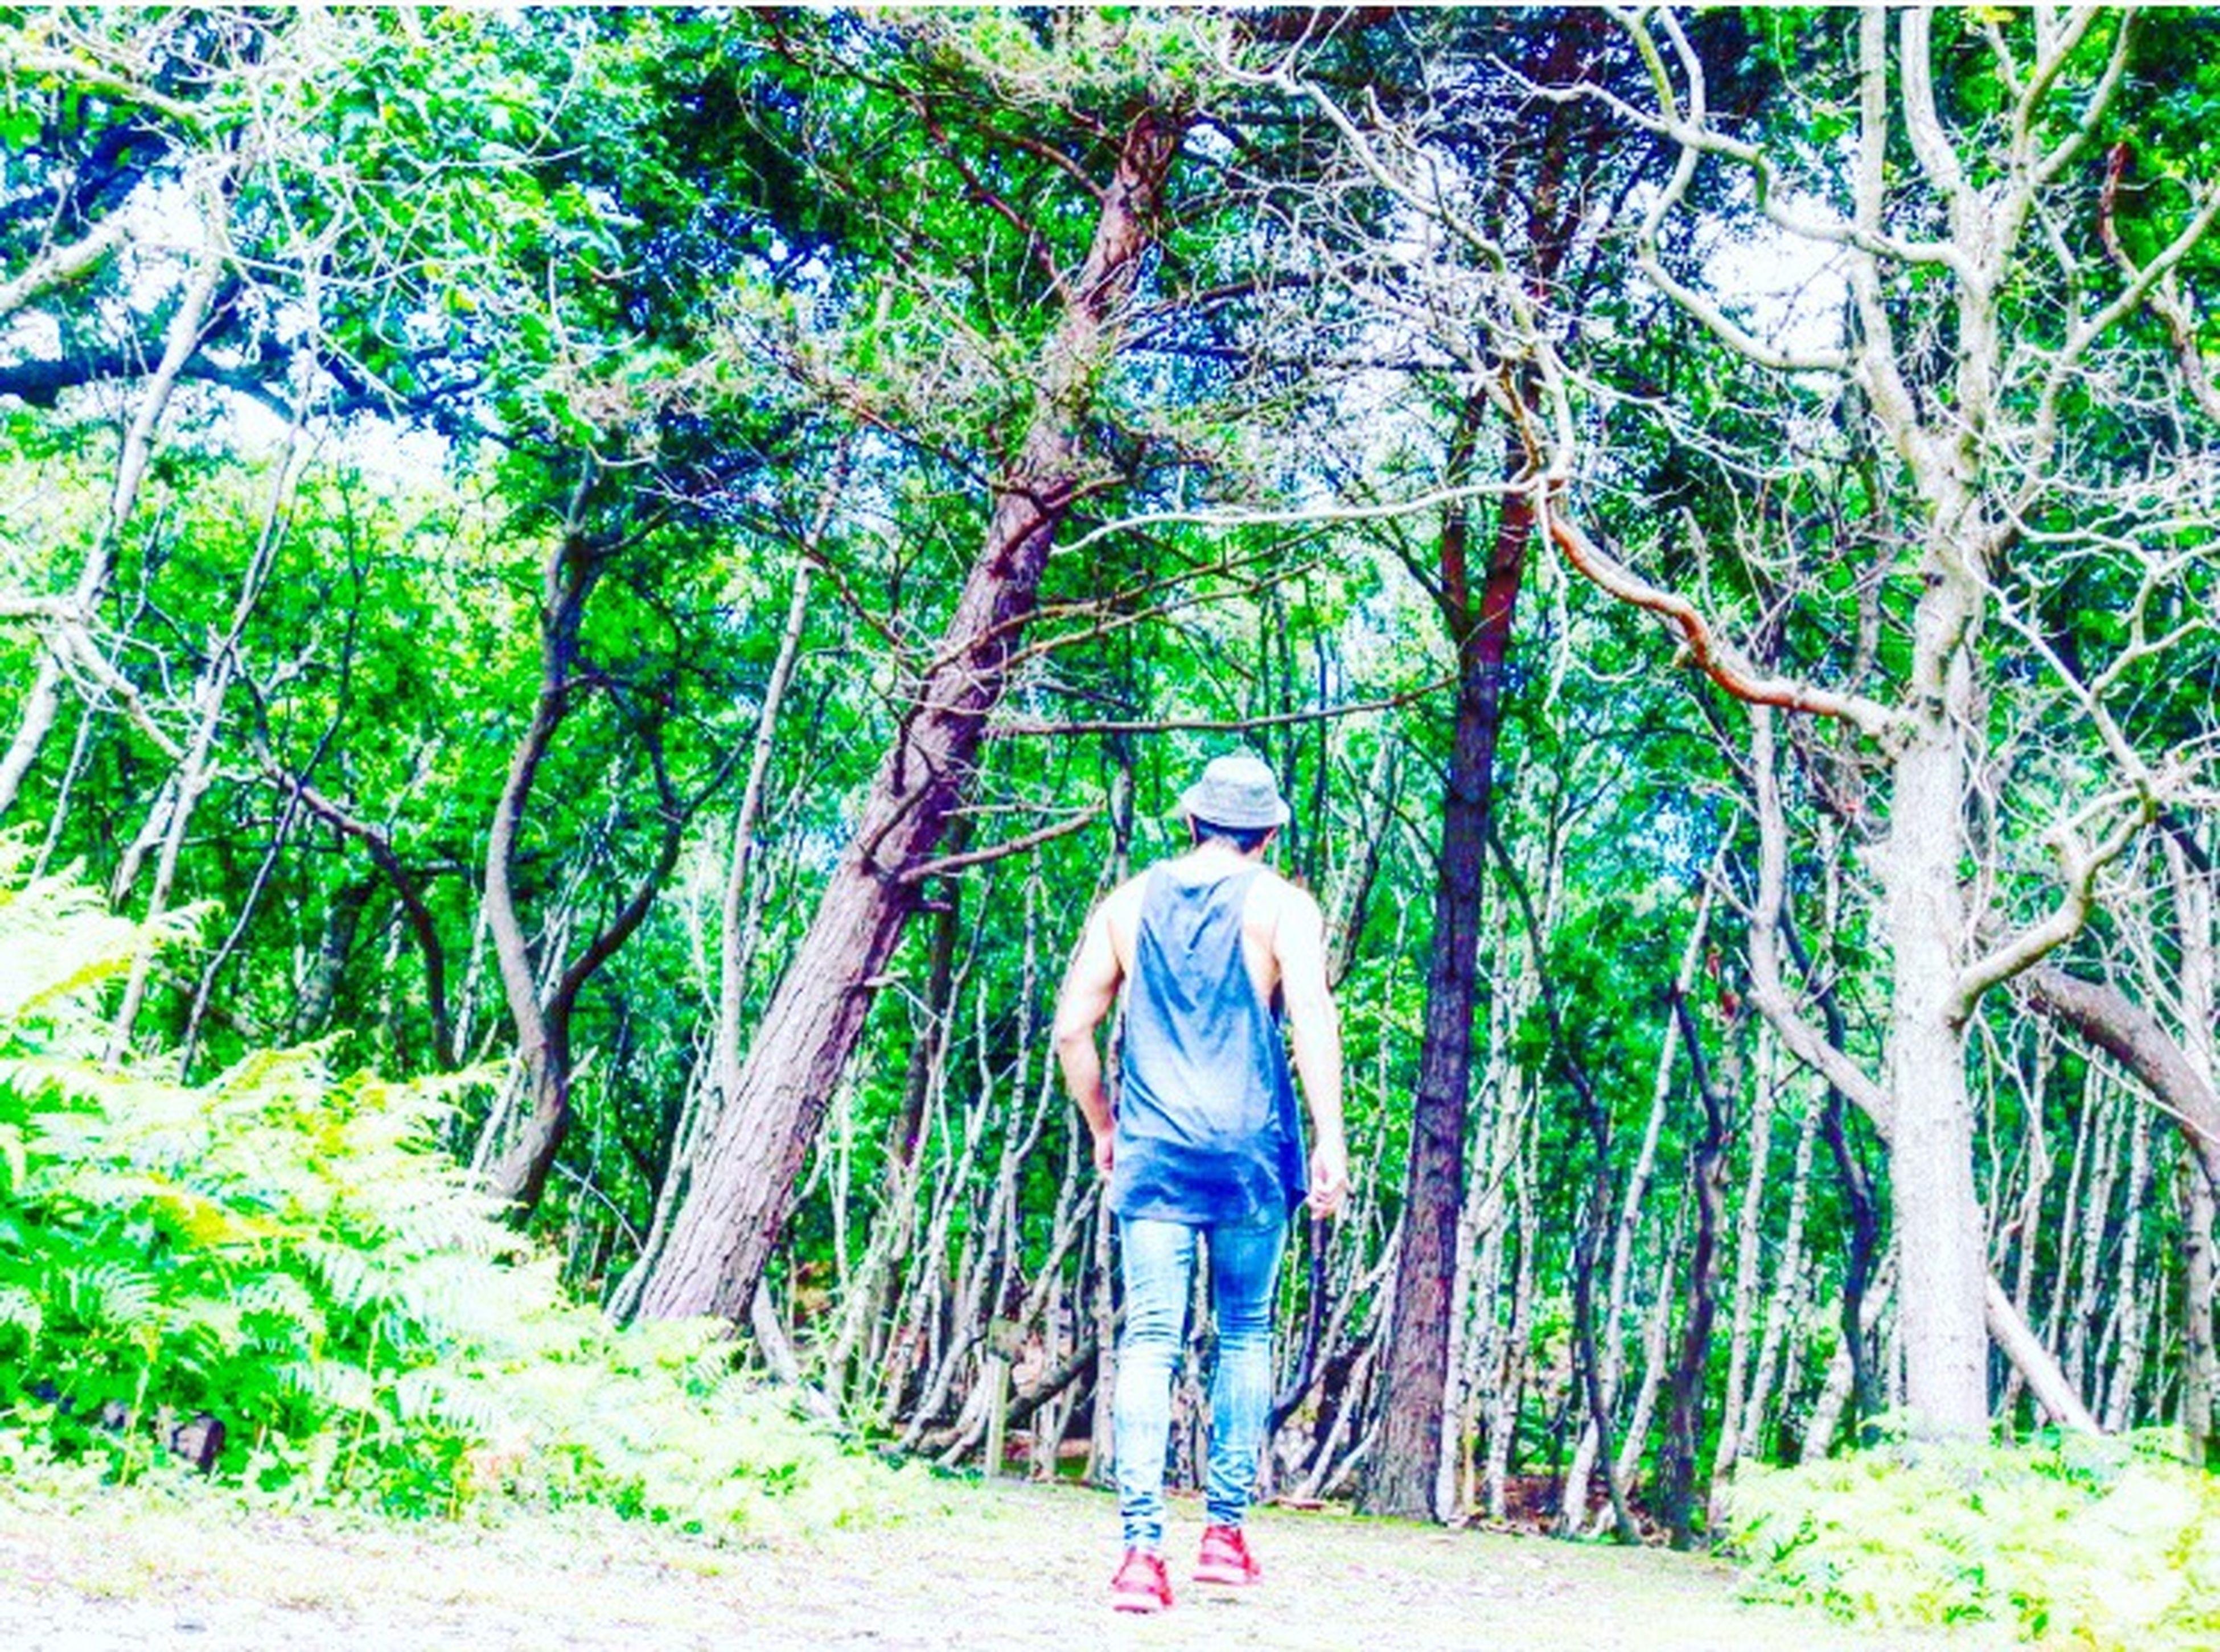 forest, tree, full length, woodland, lifestyles, tranquil scene, non-urban scene, rear view, leisure activity, tree trunk, nature, tranquility, scenics, walking, beauty in nature, tourism, tourist, casual clothing, day, growth, vacations, branch, green color, outdoors, woods, solitude